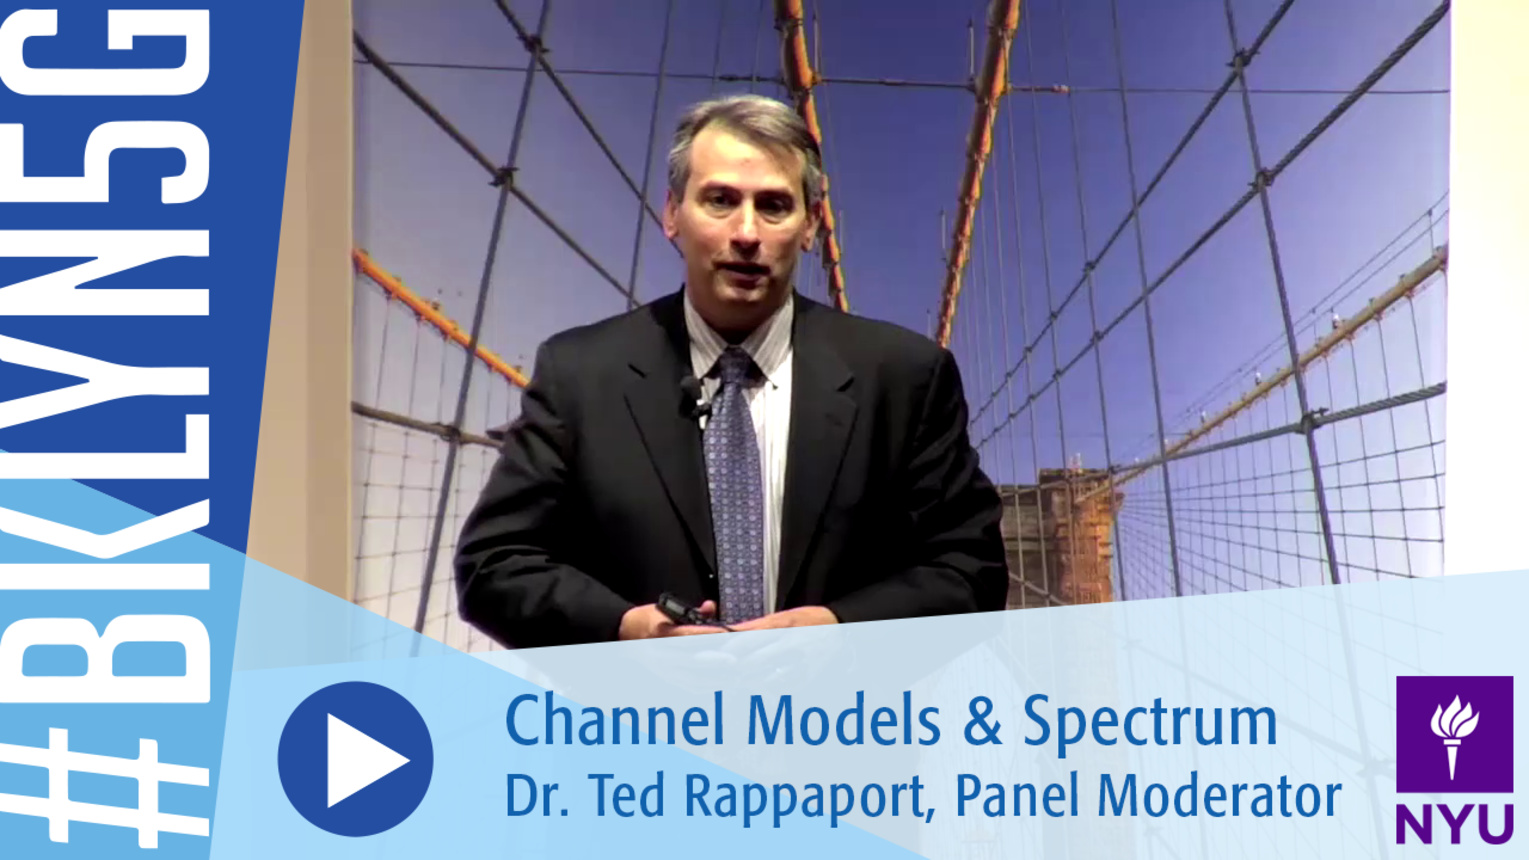 Brooklyn 5G 2016: Panel Moderator Dr. Ted Rappaport on Channel Models and Spectrum